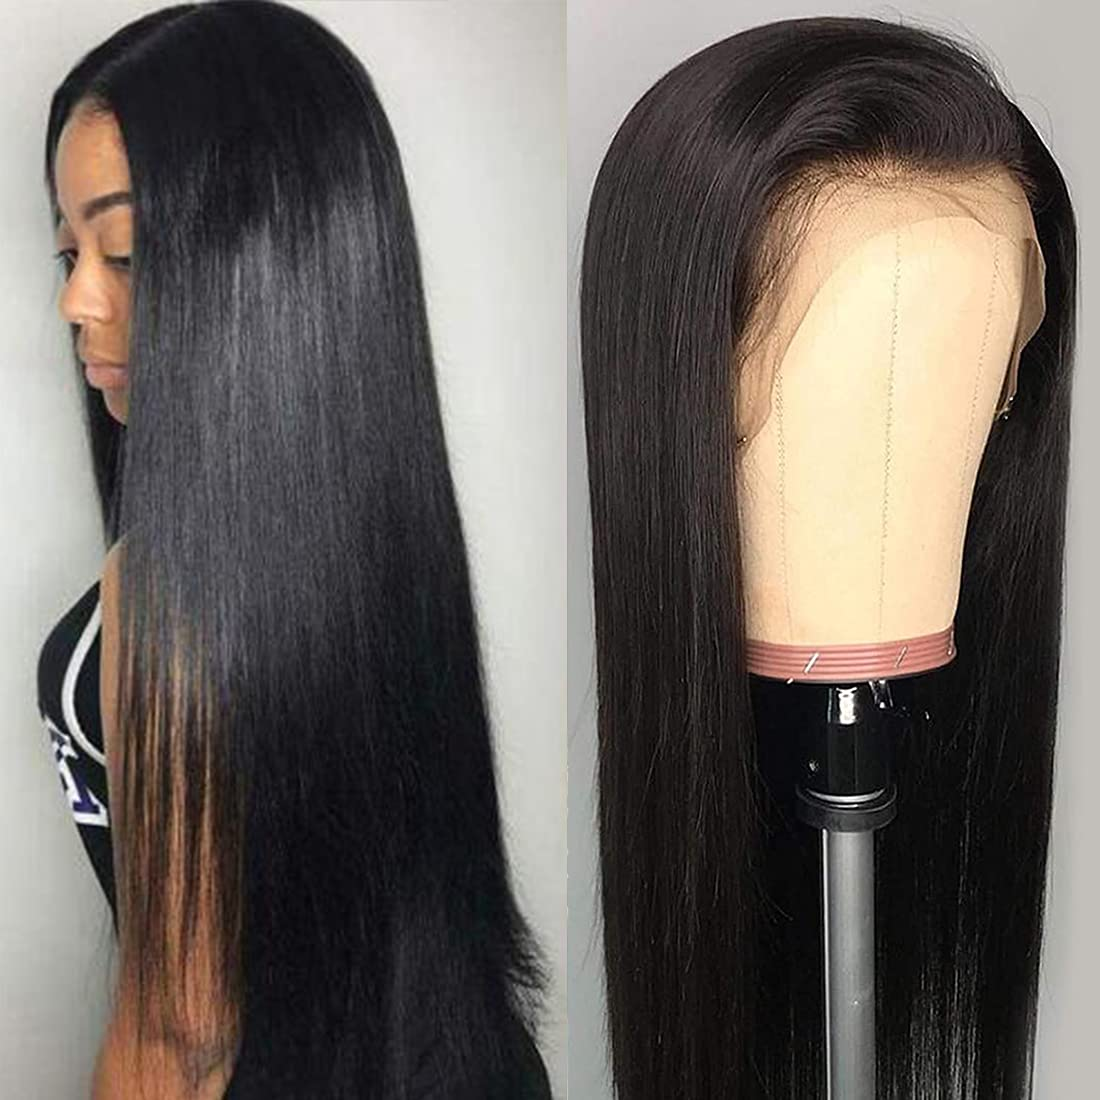 ANGIE QUEEN 13x4 Frontal Lace New York Mall Front Human Wig-Glue Hair Opening large release sale Wig